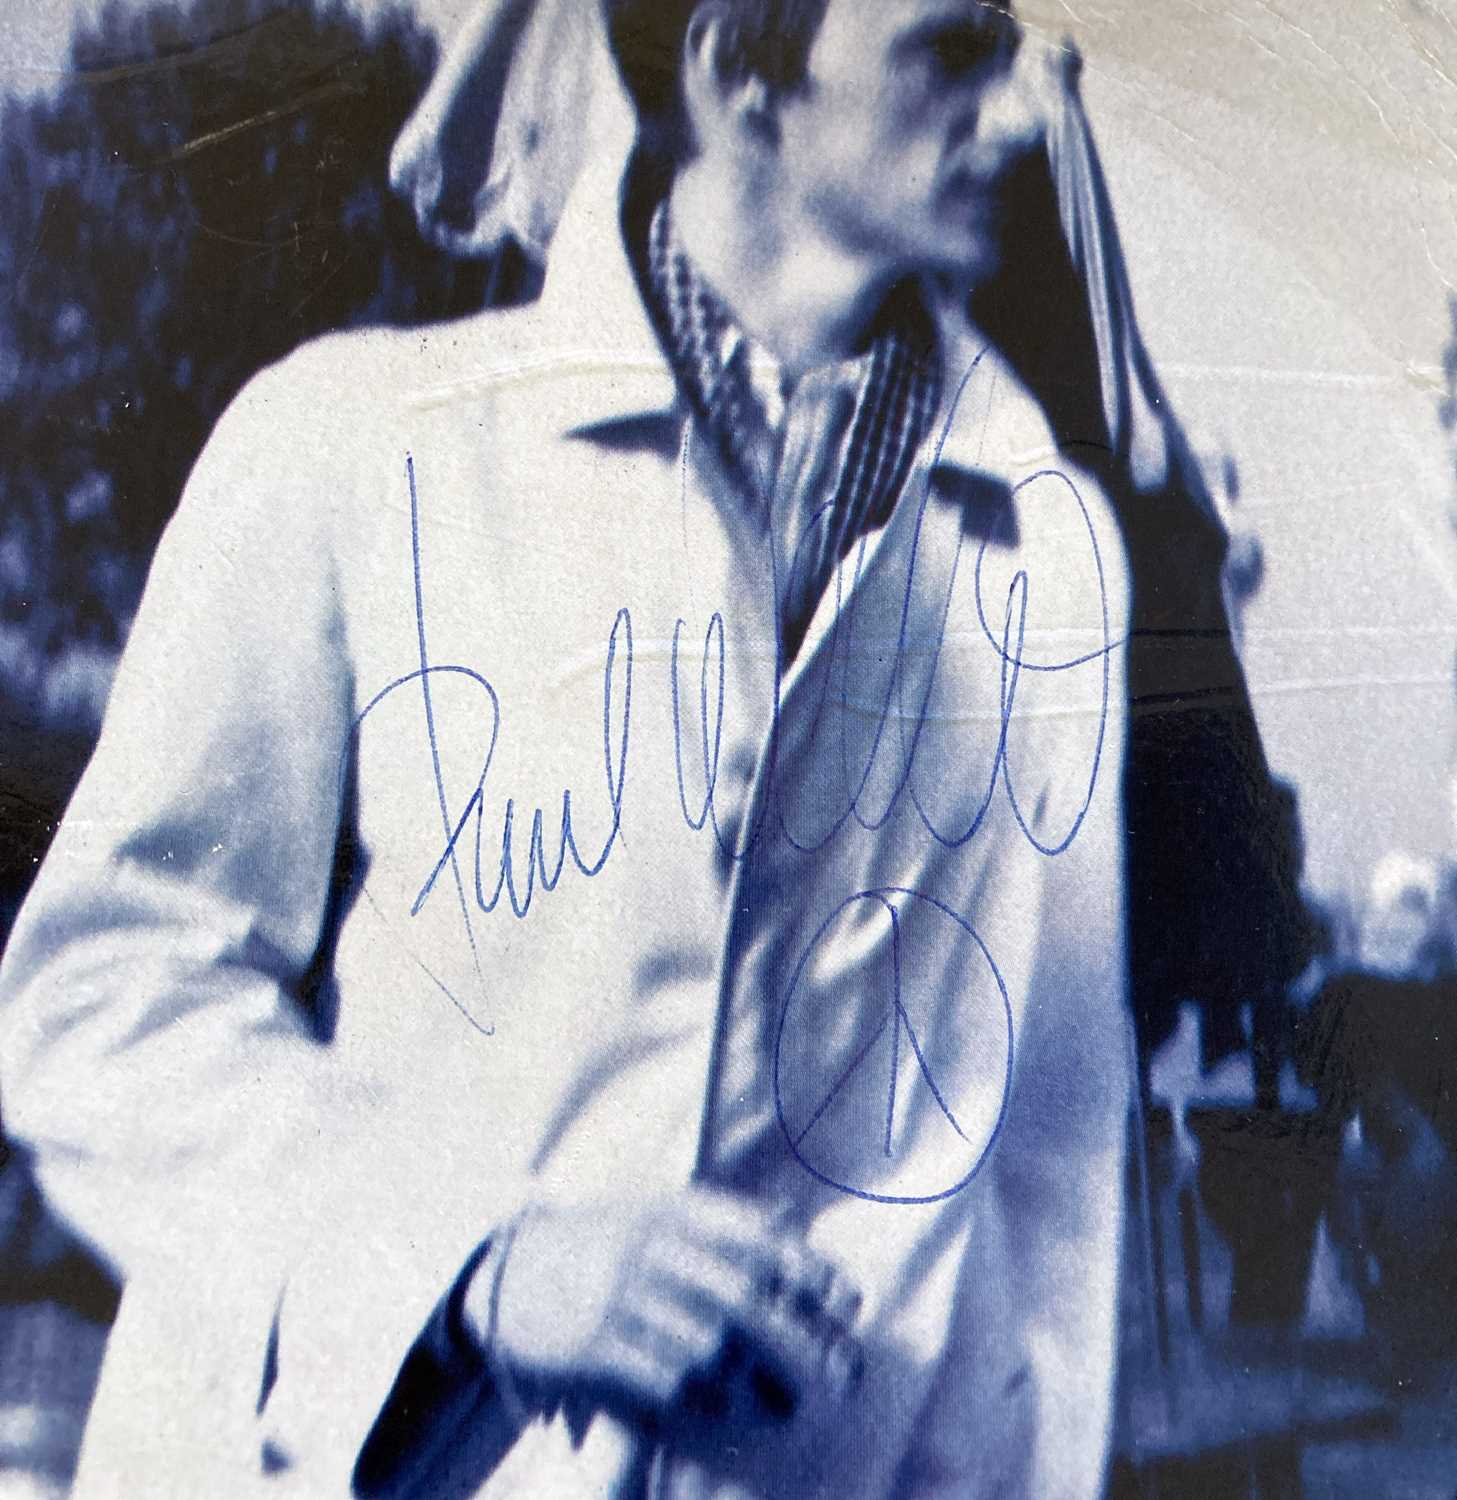 THE STYLE COUNCIL - SIGNED LPS. - Image 3 of 8